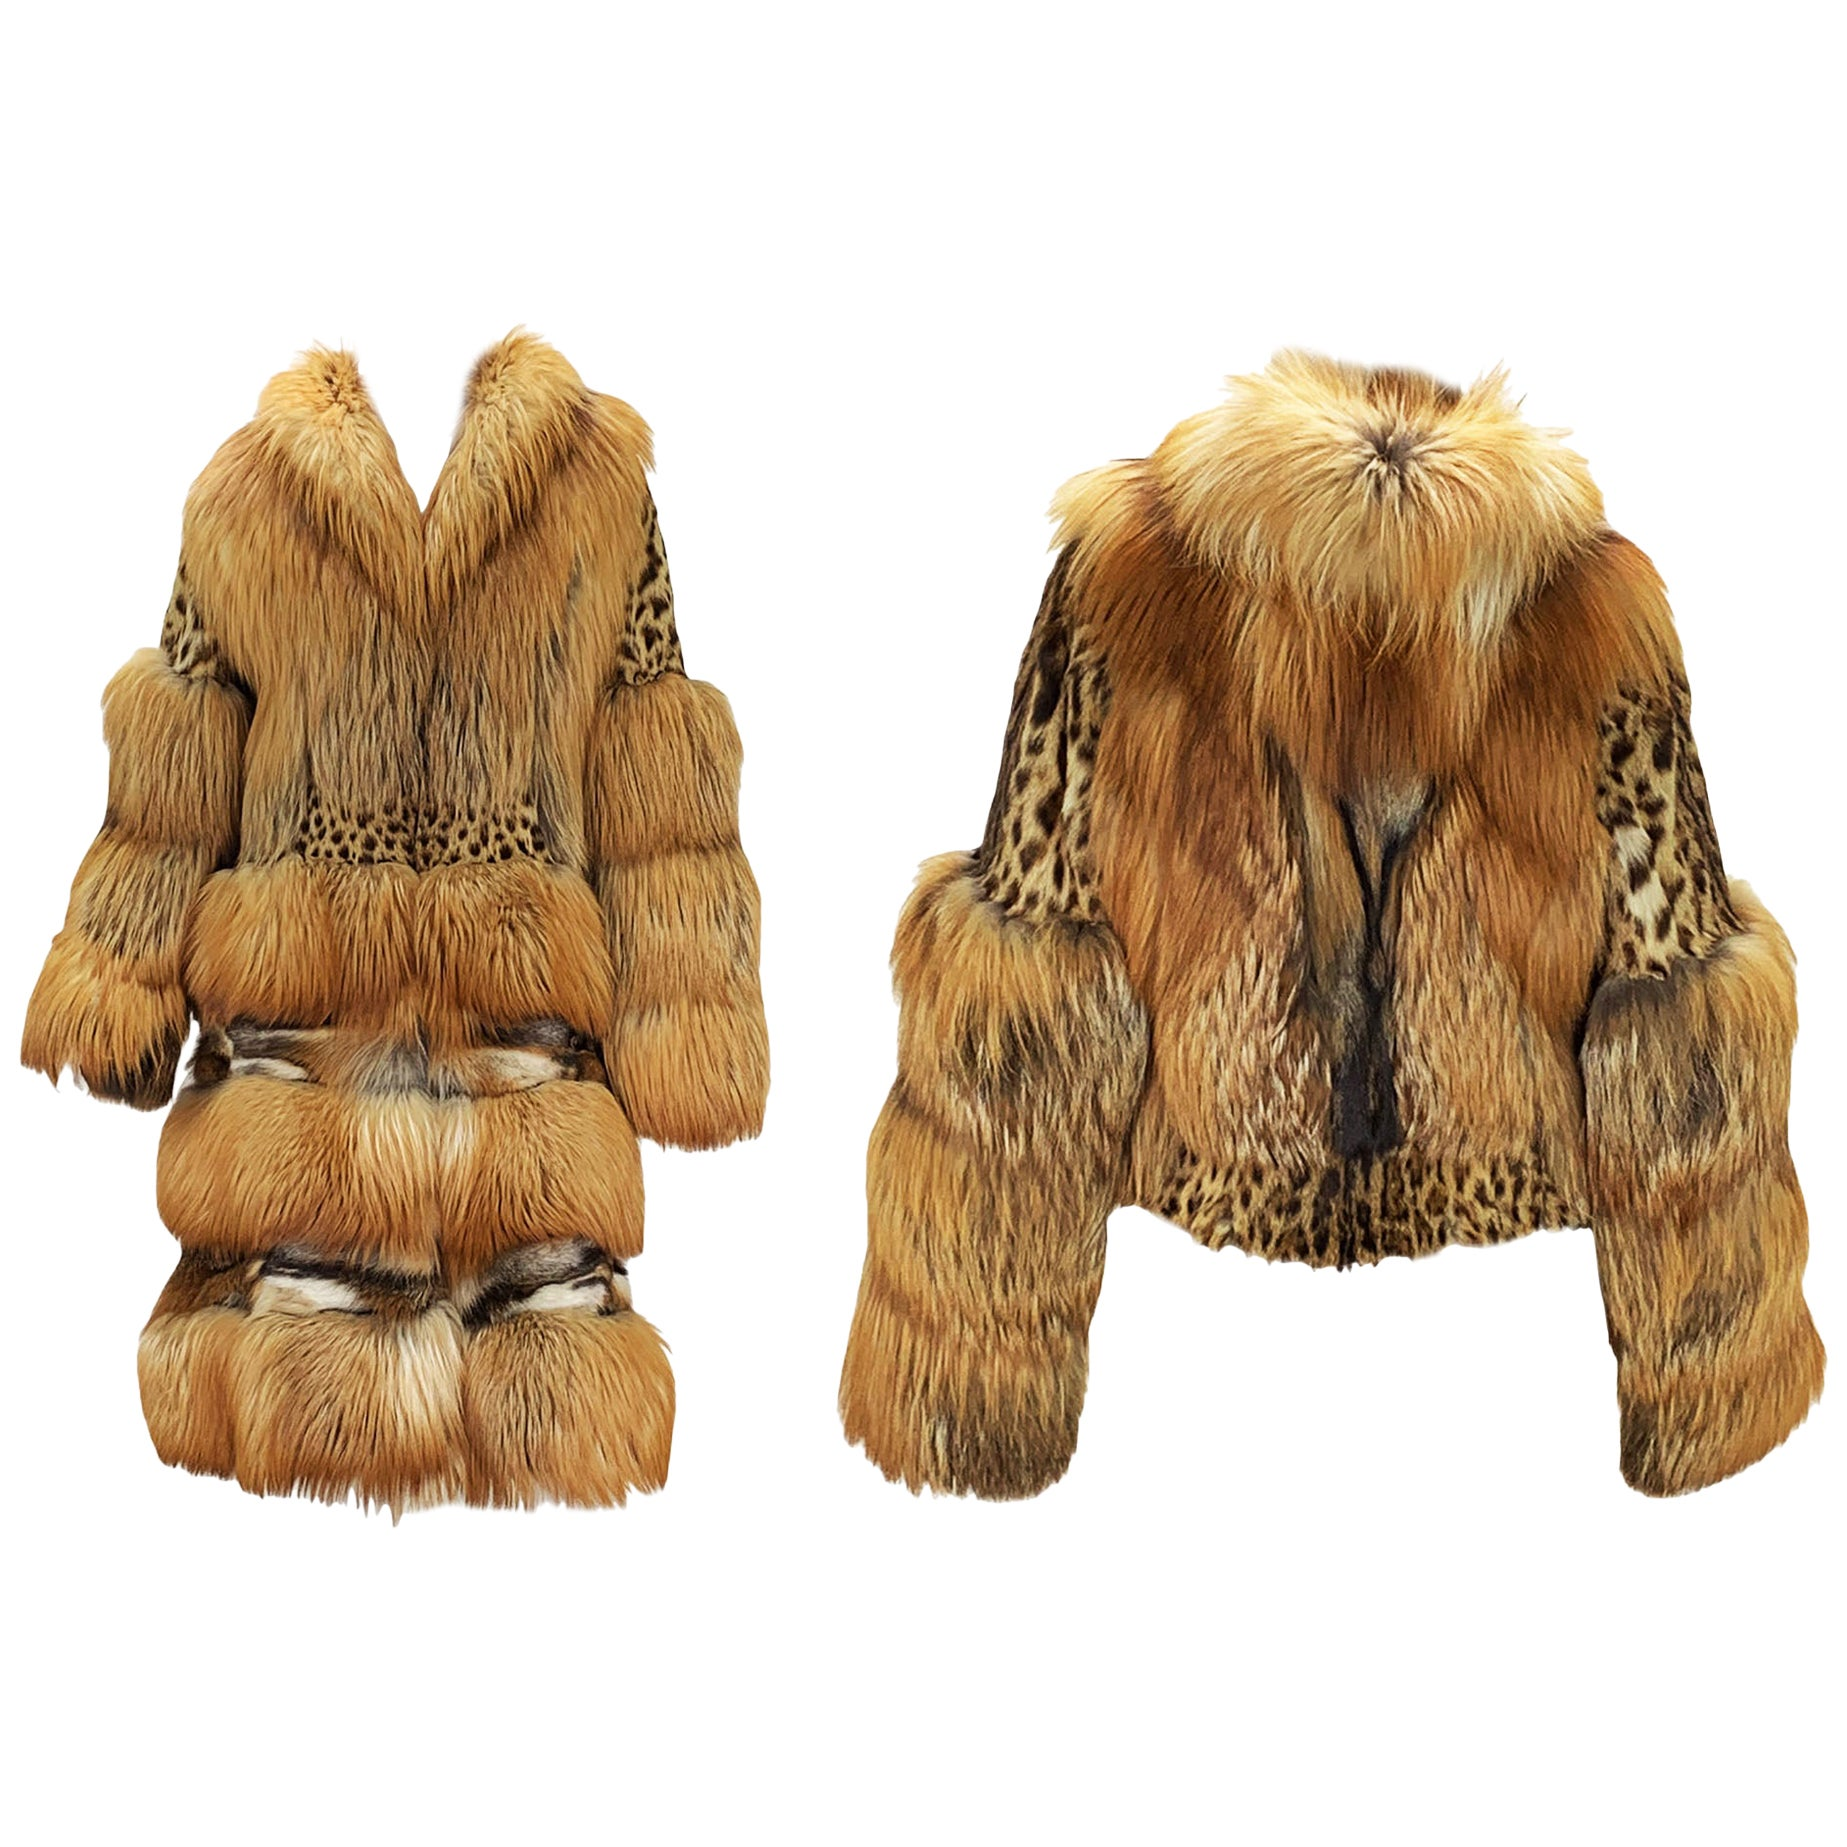 Museum Tom Ford for Gucci Runway F/W 1999 2 in 1 Fur Coat Jacket